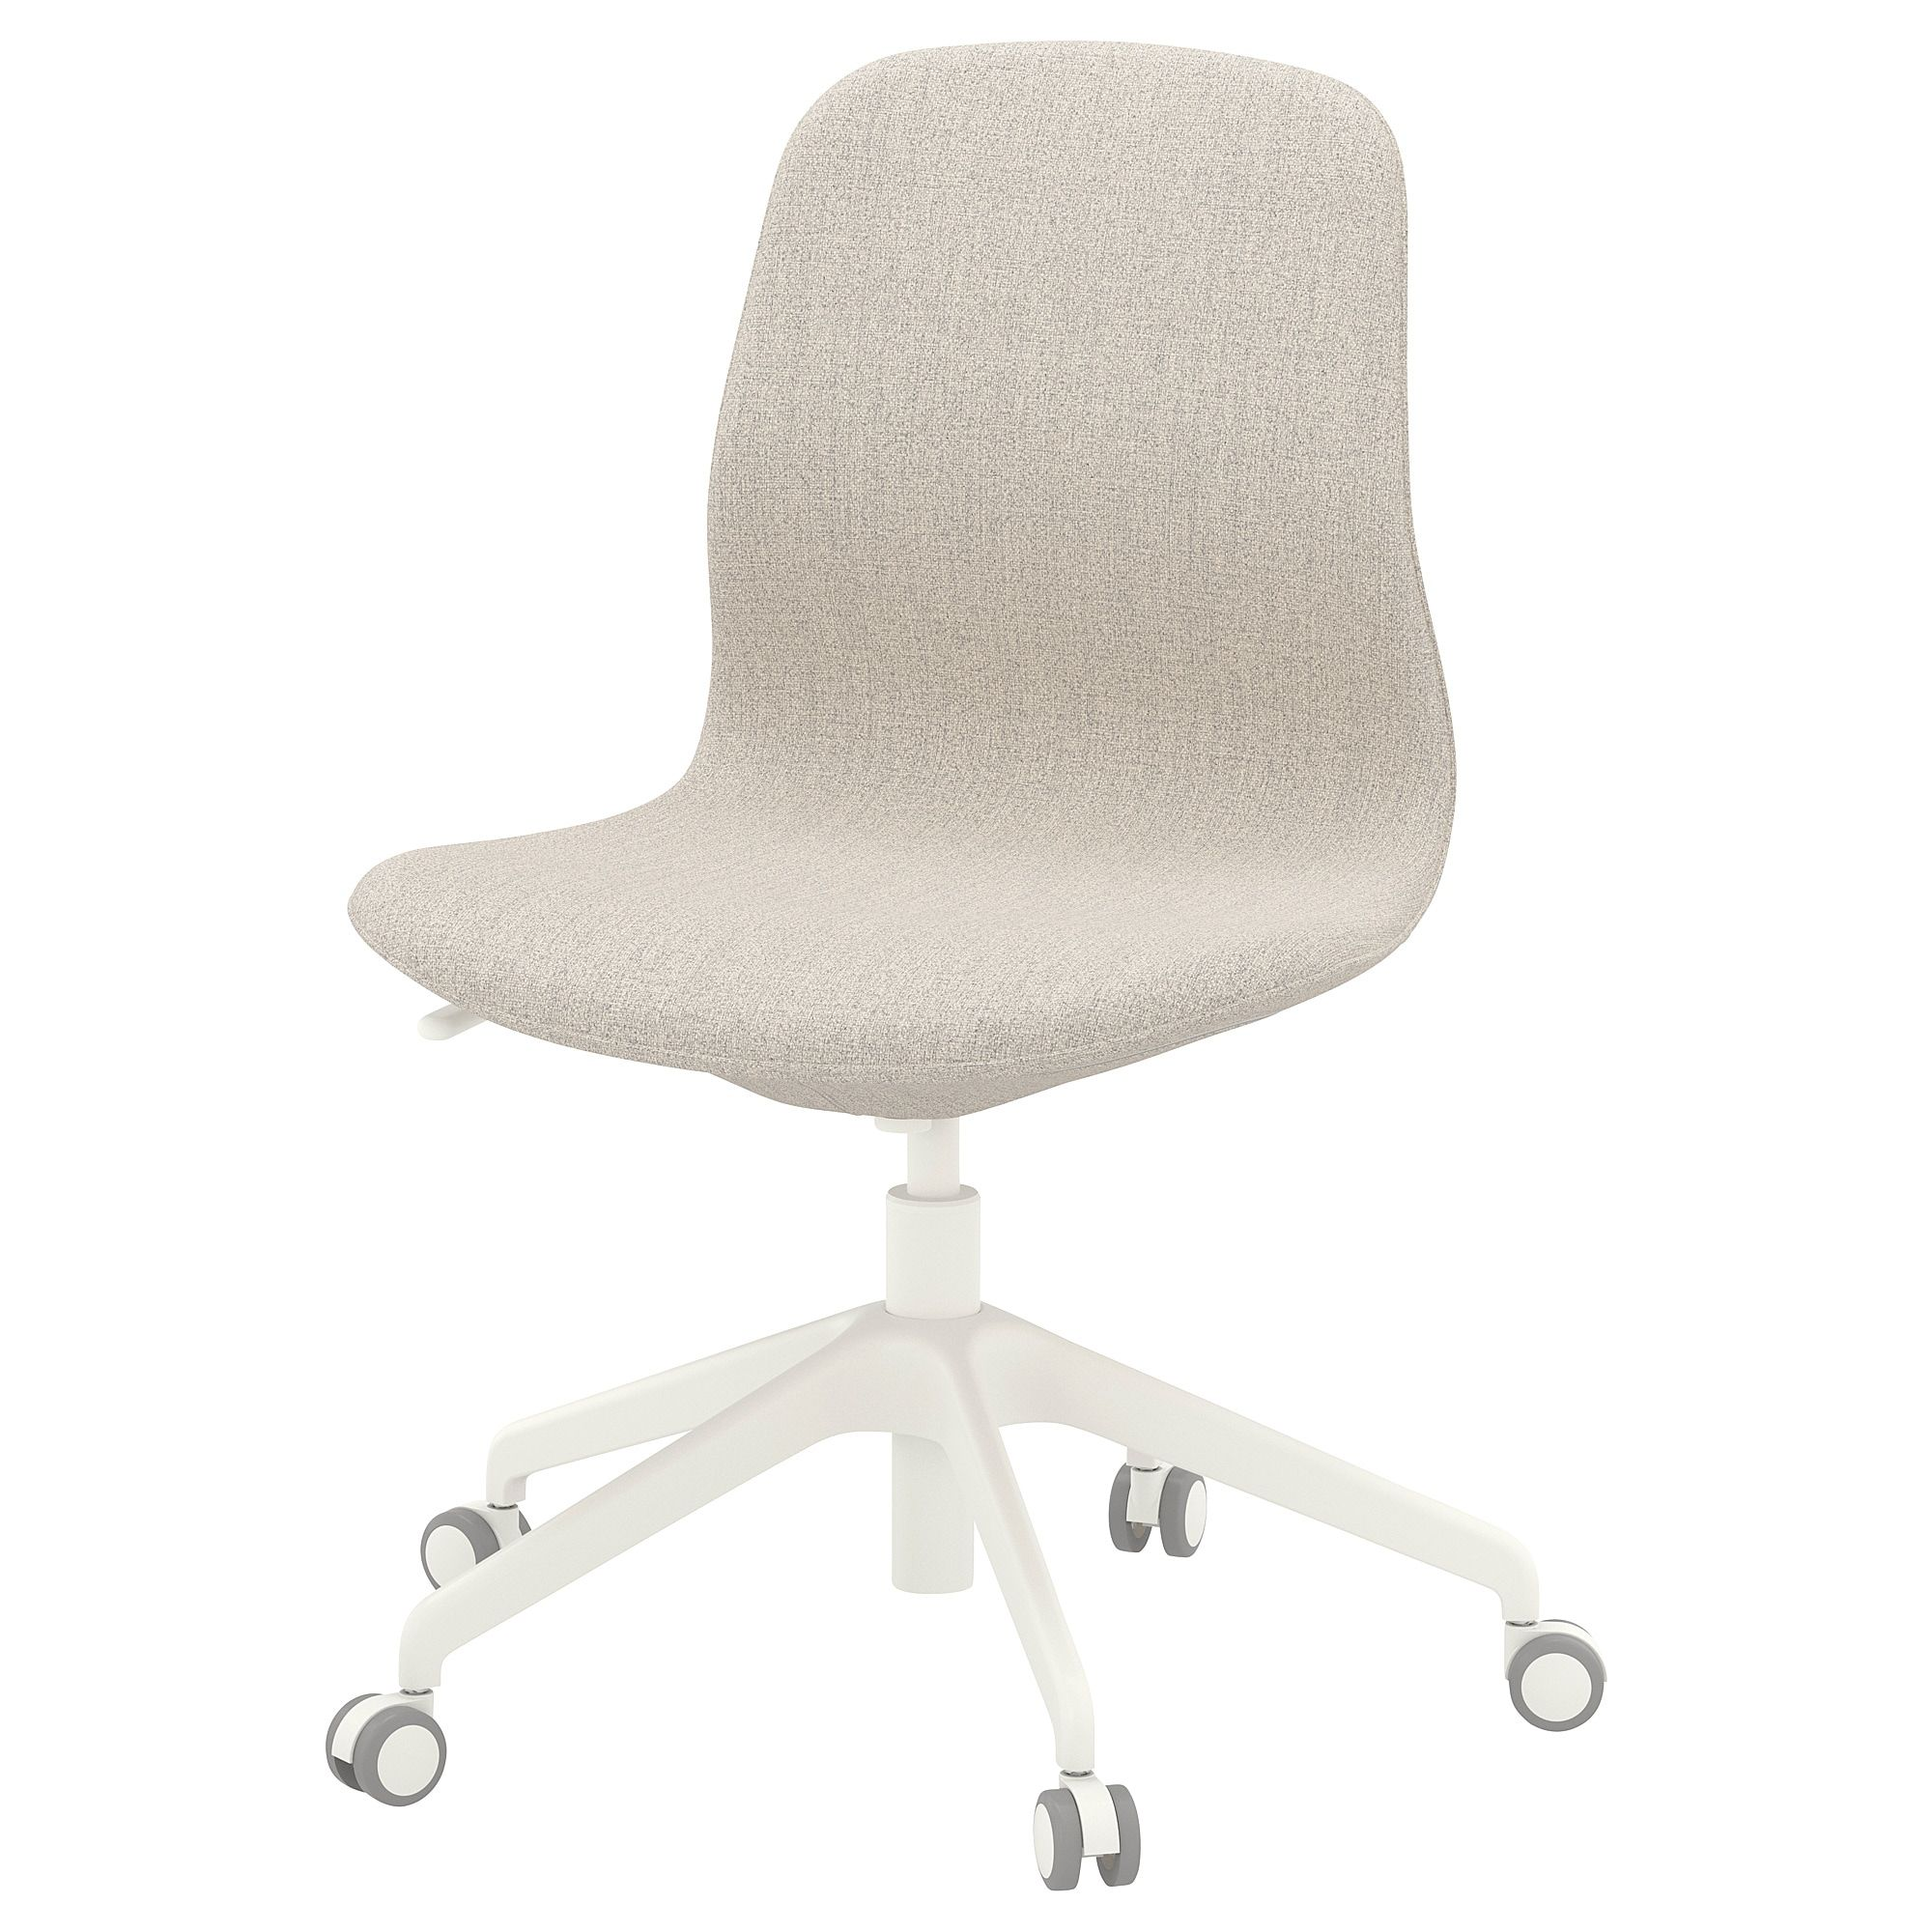 Langfjall Office Chair Gunnared Light Green White Ikea Office Chair Ergonomic Office Chair Used Office Chairs